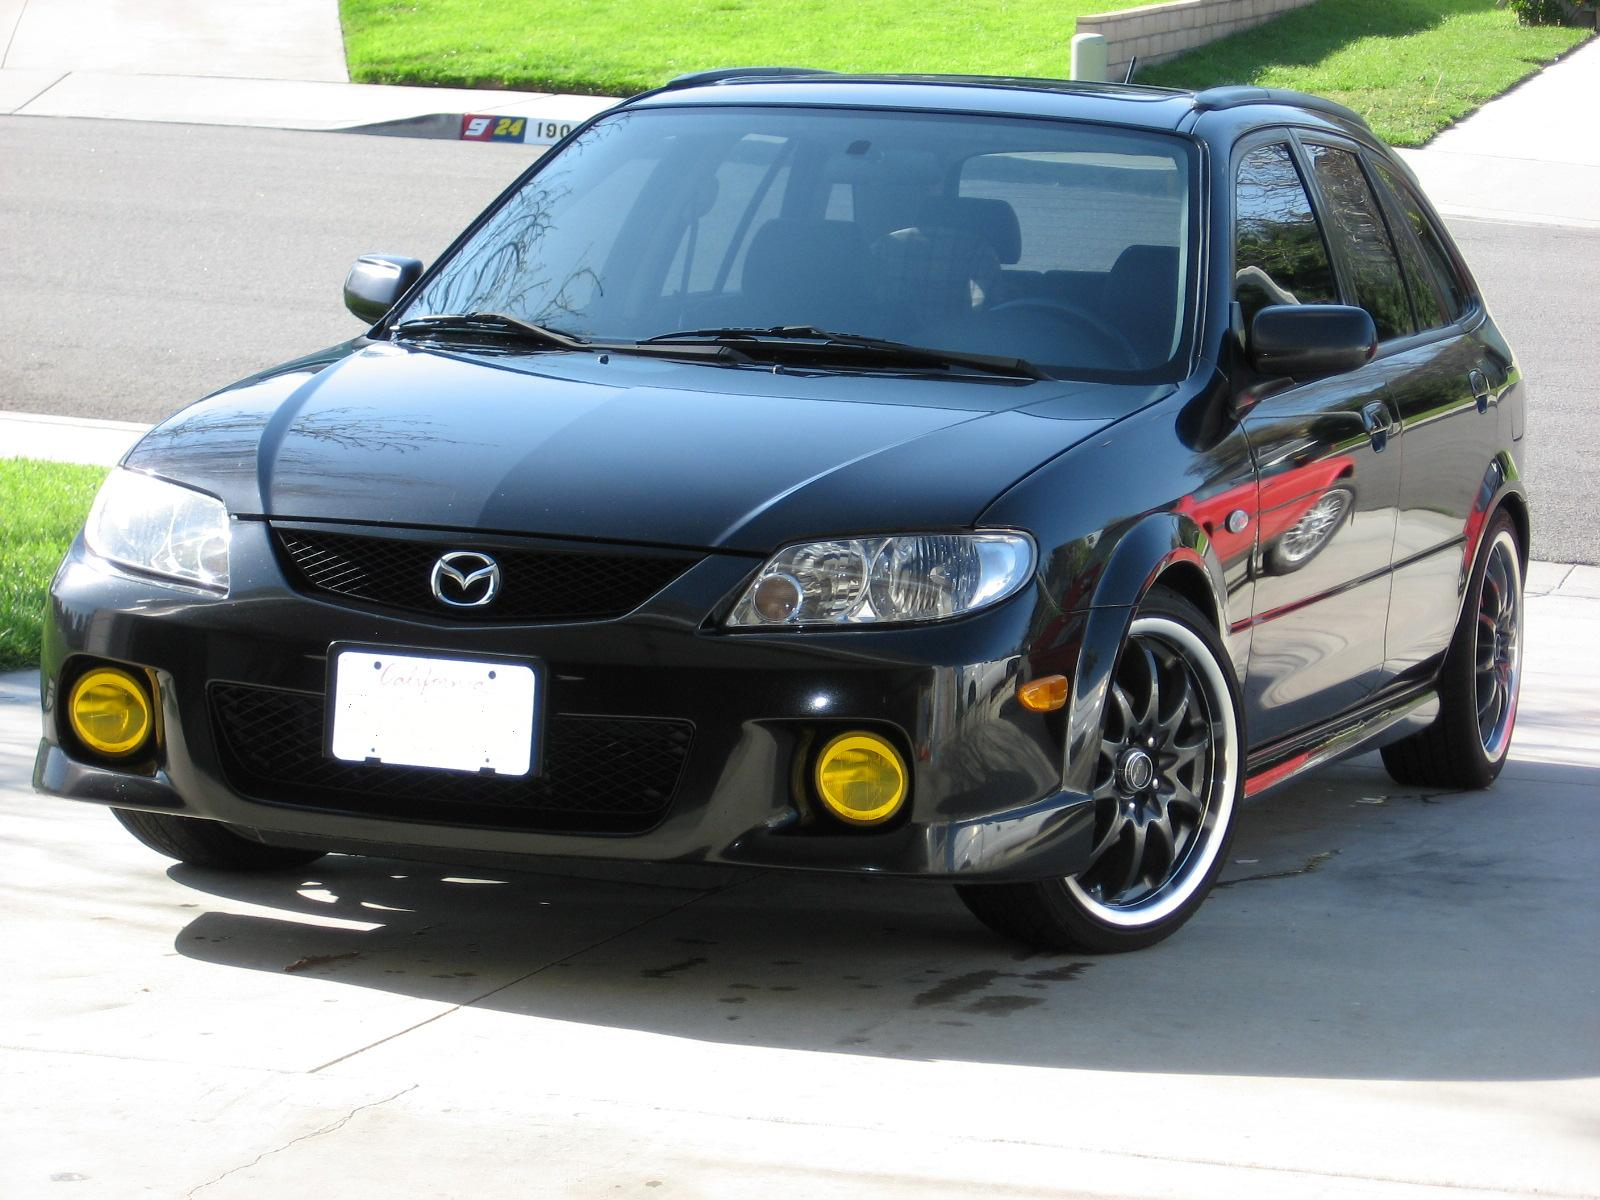 Mazda Protege5 Added on May 25 by Nomad